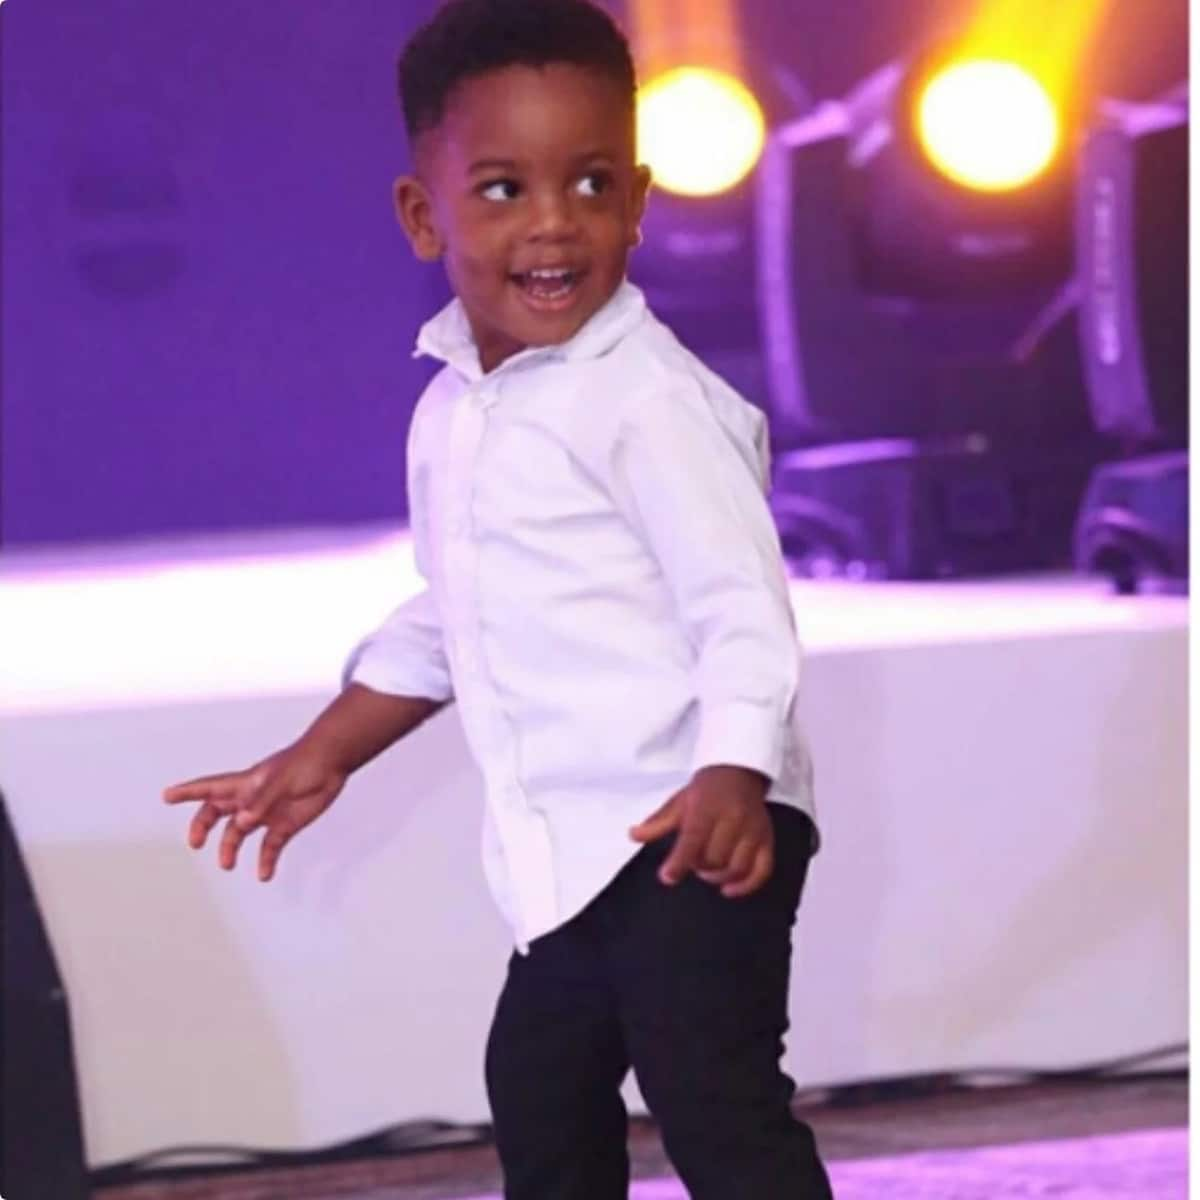 Menaye Donkor shows off her adorable son who is all grown up now